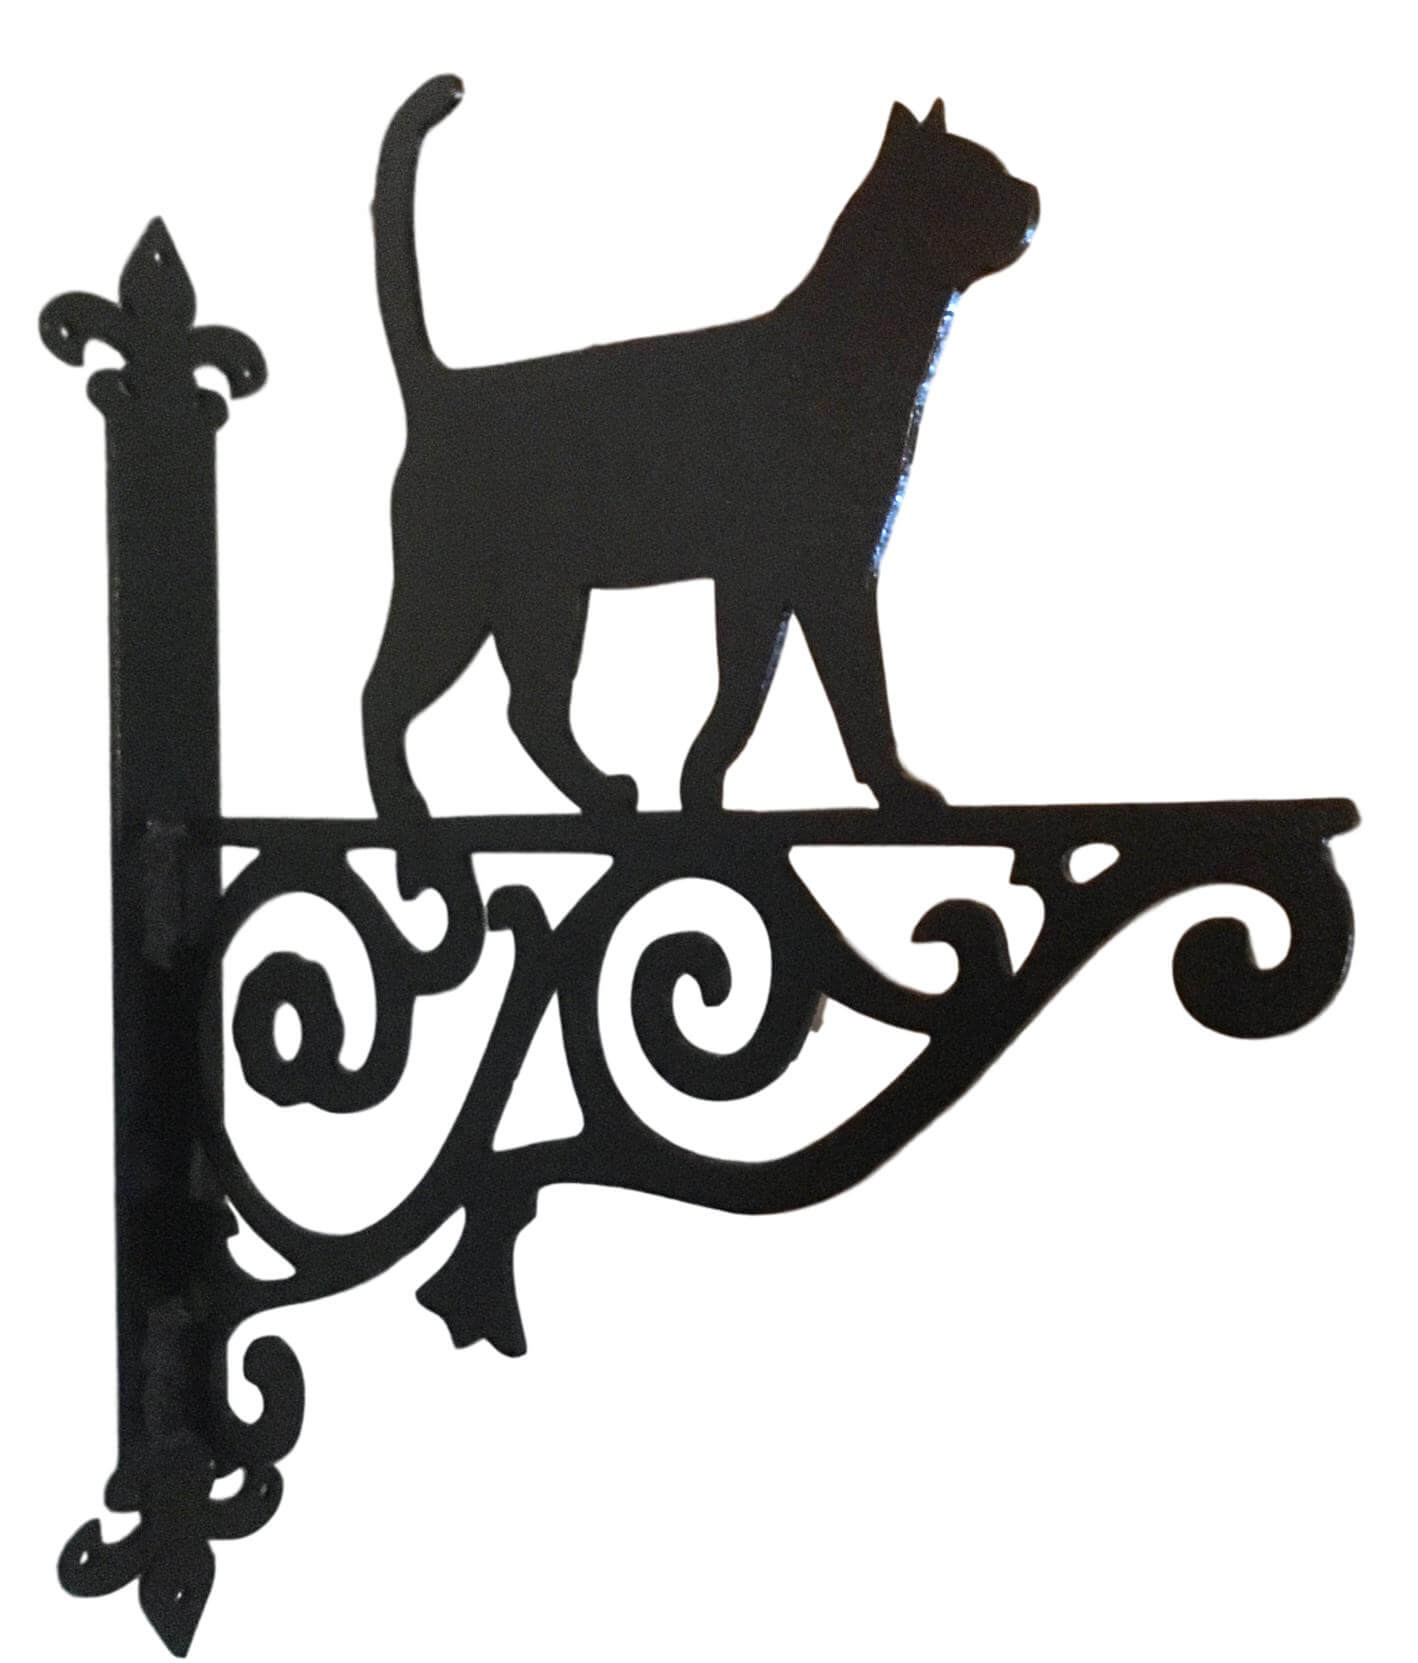 Metal Black Cat Walking Hanging Bracket